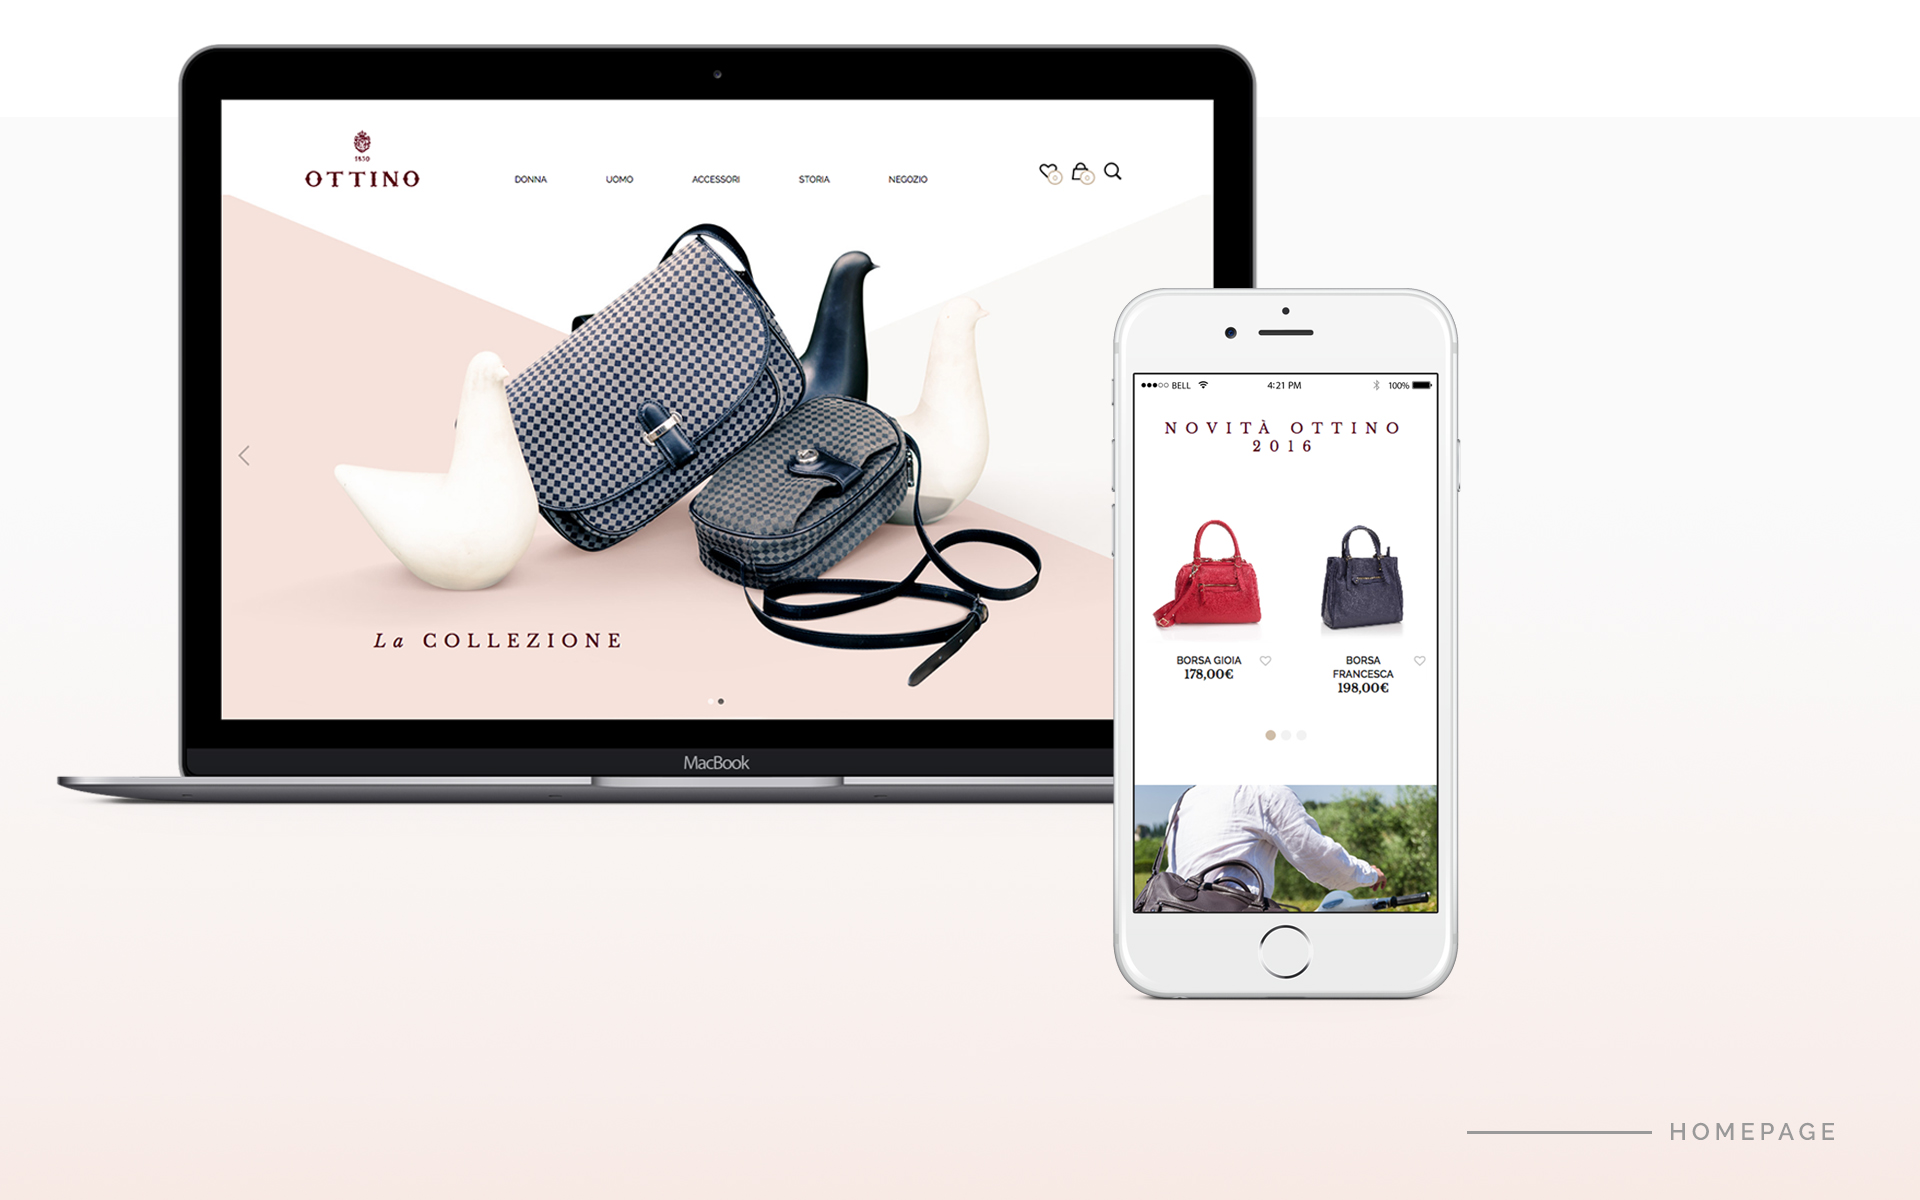 ottino by e-commerce therapy homepage